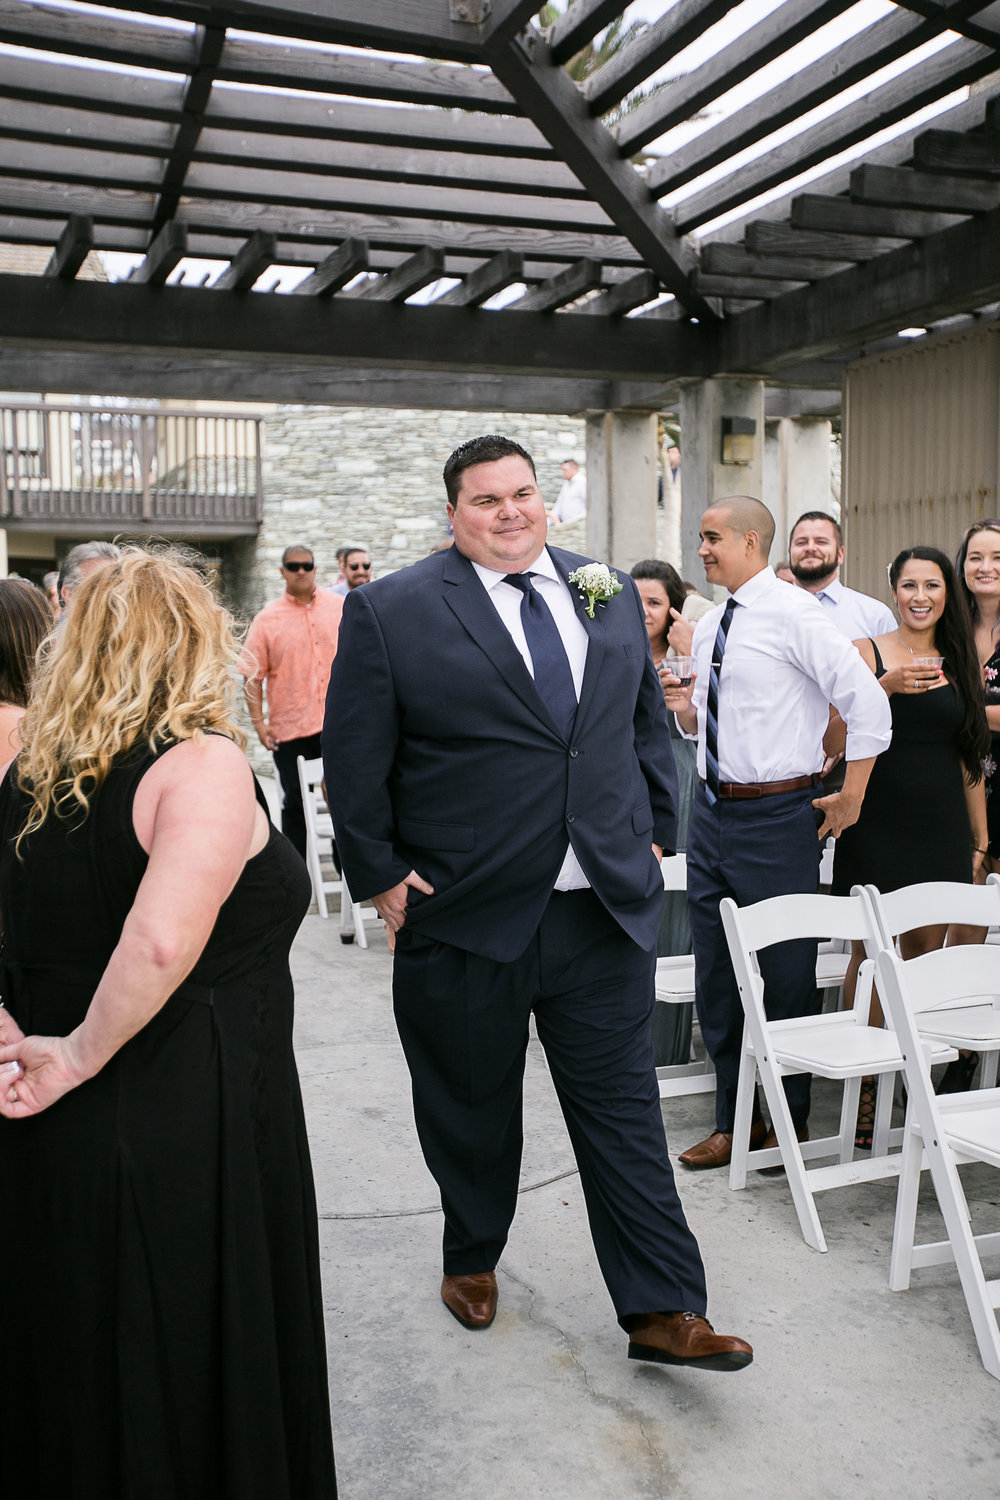 Jen_&_Mike_Del_Mar_Powerhouse_Wedding_2017 (23 of 45).jpg